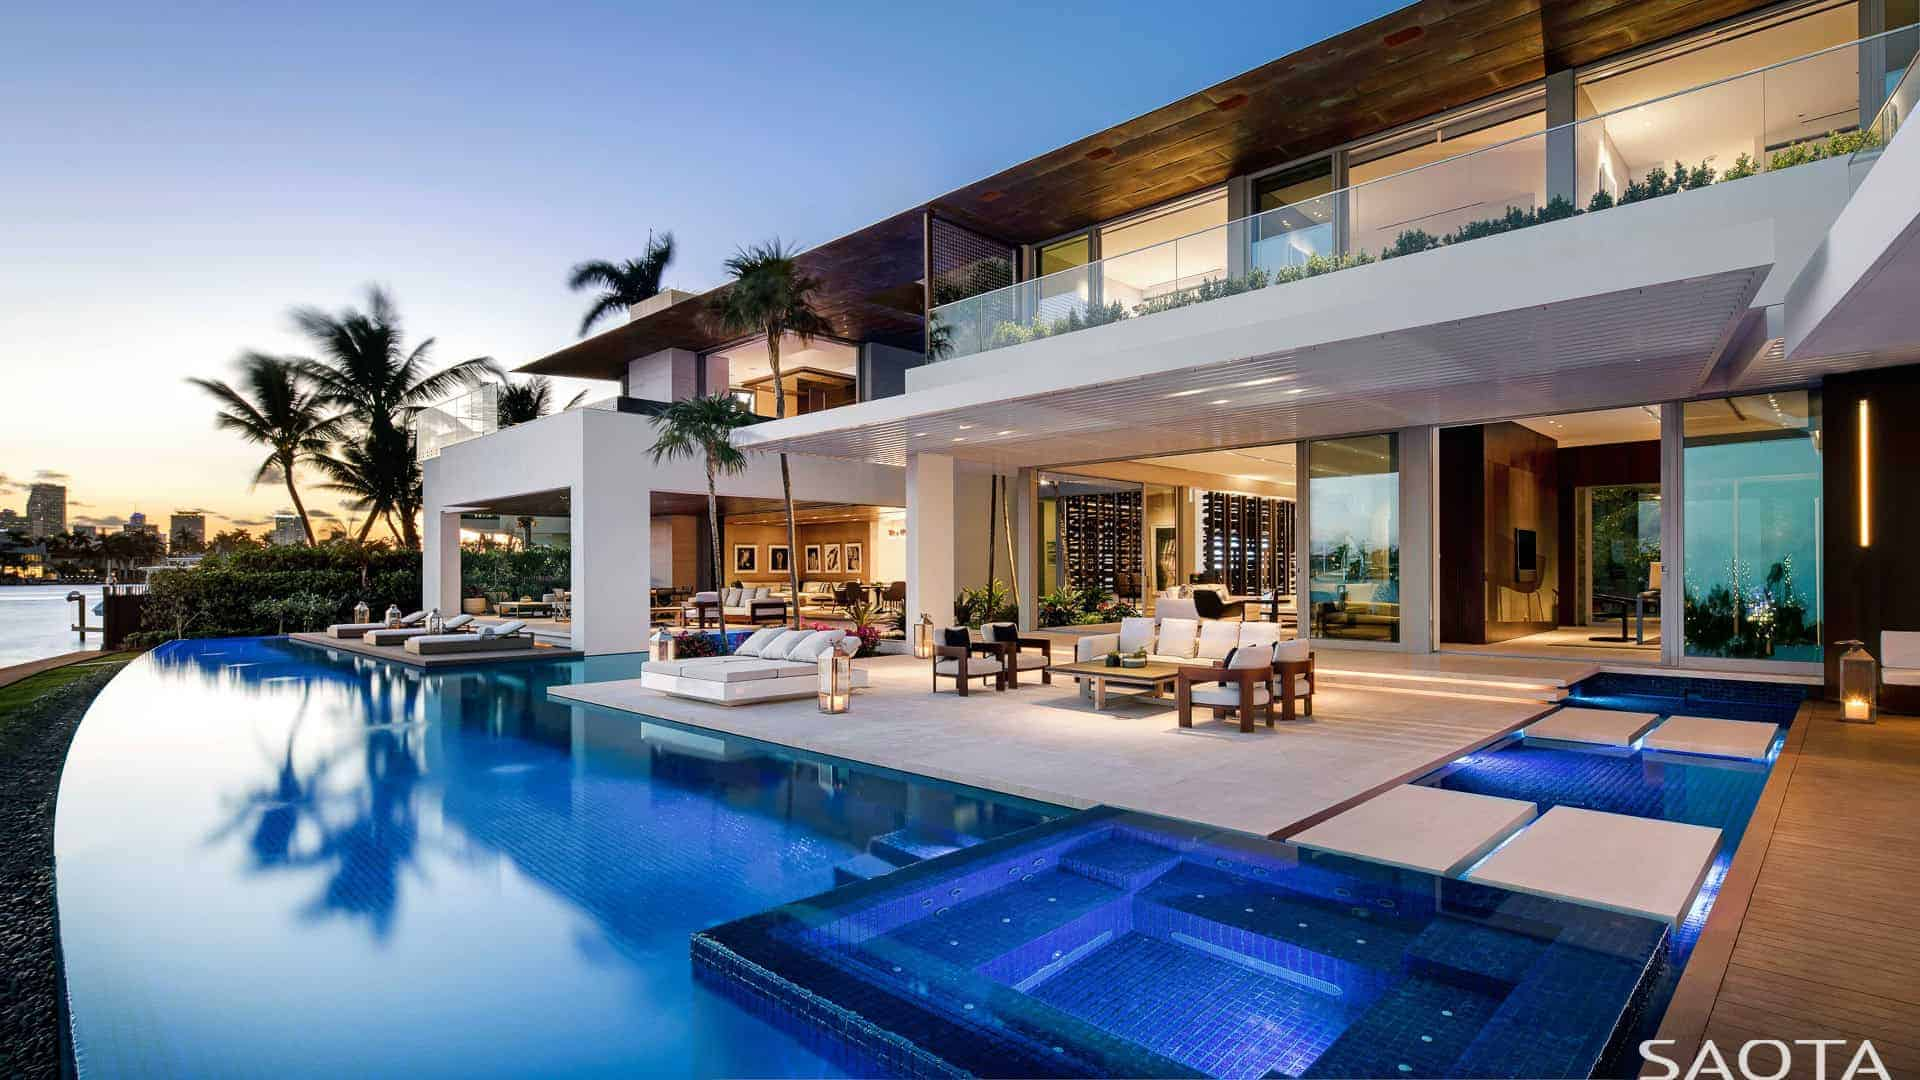 A huge contemporary mansion located in Miami. It features an infinity swimming pool along with multiple sitting lounges.